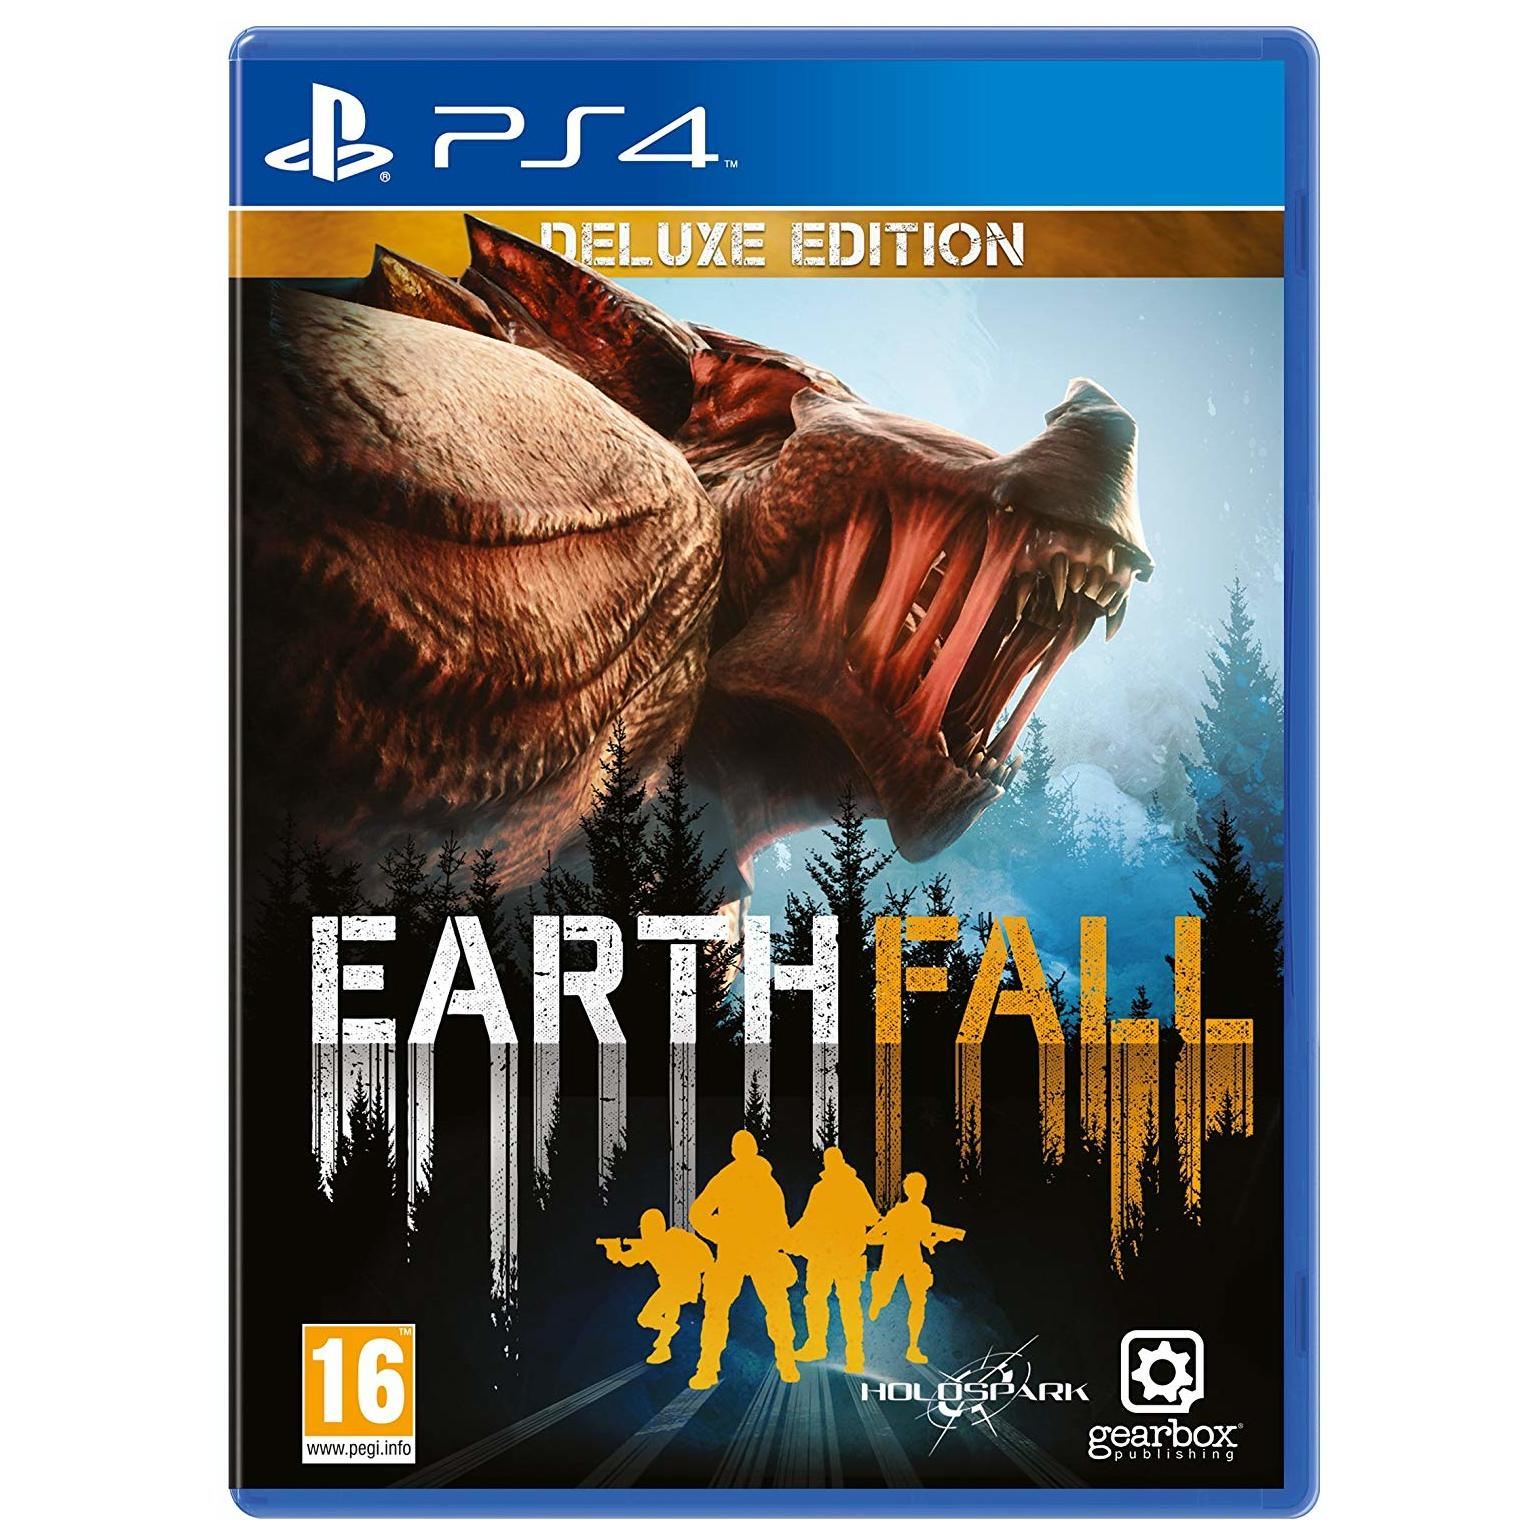 Ps4 The Last Of Us Remastered Game Price Specifications Features Ps4uncharted 4 A Thief End Reg 3 All Earthfall Deluxe Edition